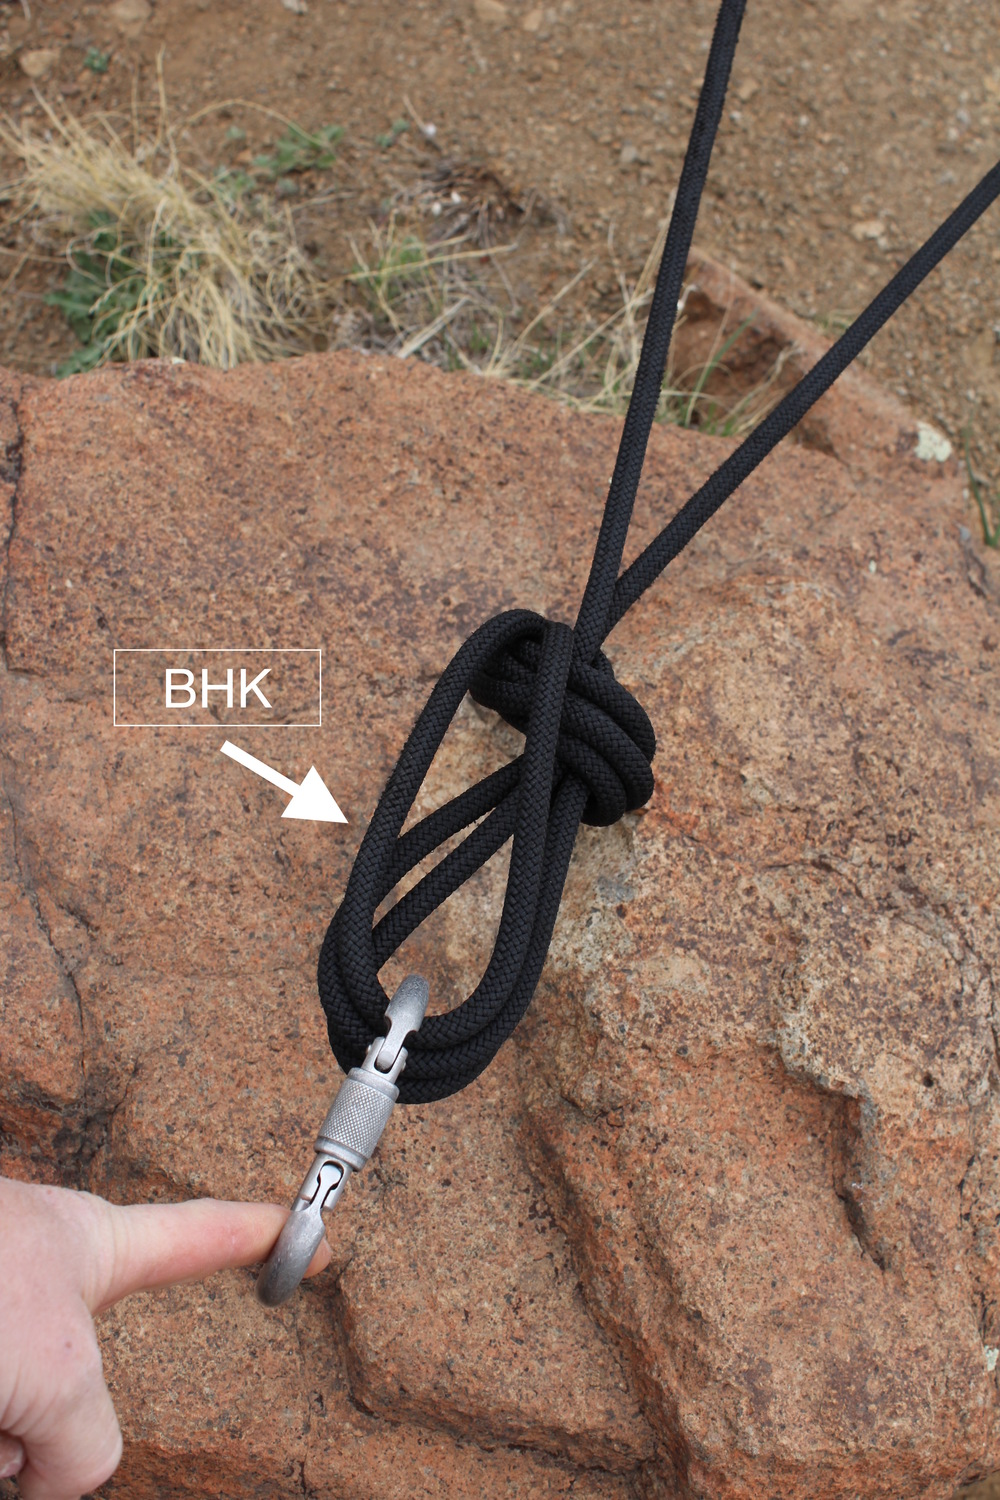 Once tied off, the anchor builder has to select a knot that combines the strength of the components, and retains all the values of an effective anchor.  Here, a BHK is an ideal choice.  It creates a redundant masterpoint.